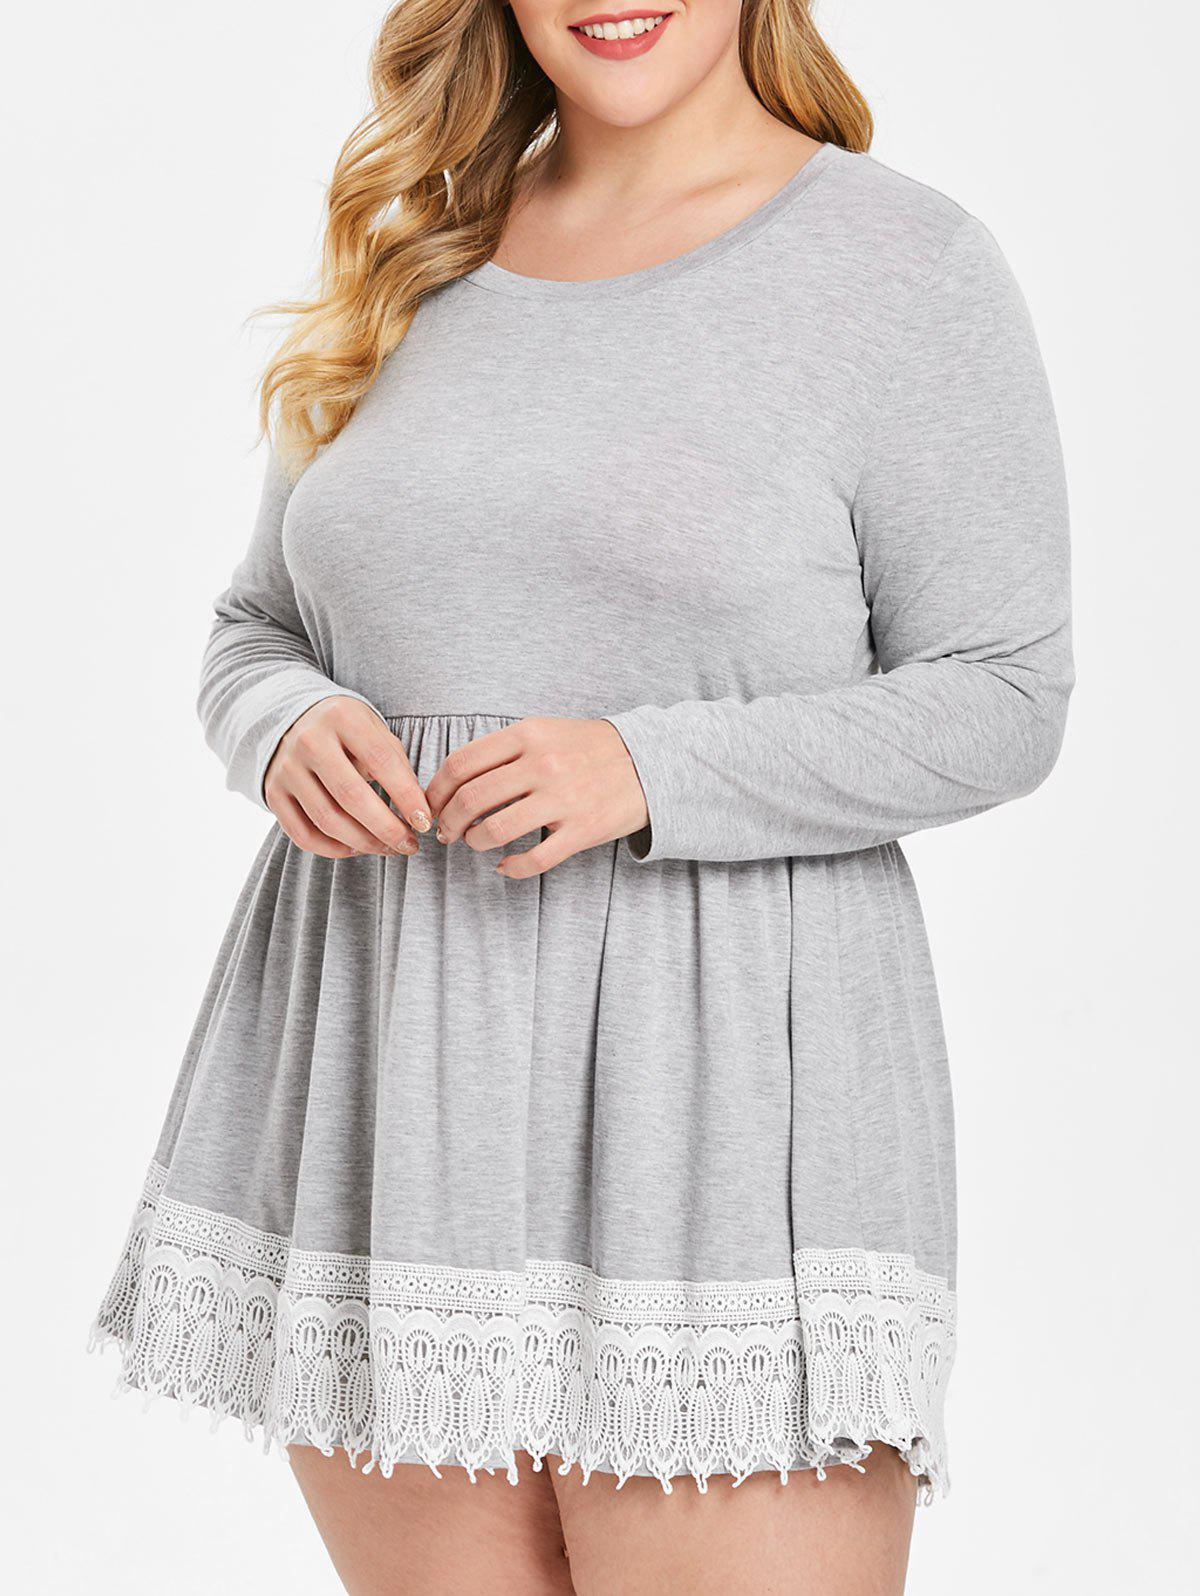 Plus Size Lace Panel Peplum Tee - LIGHT GRAY 2X